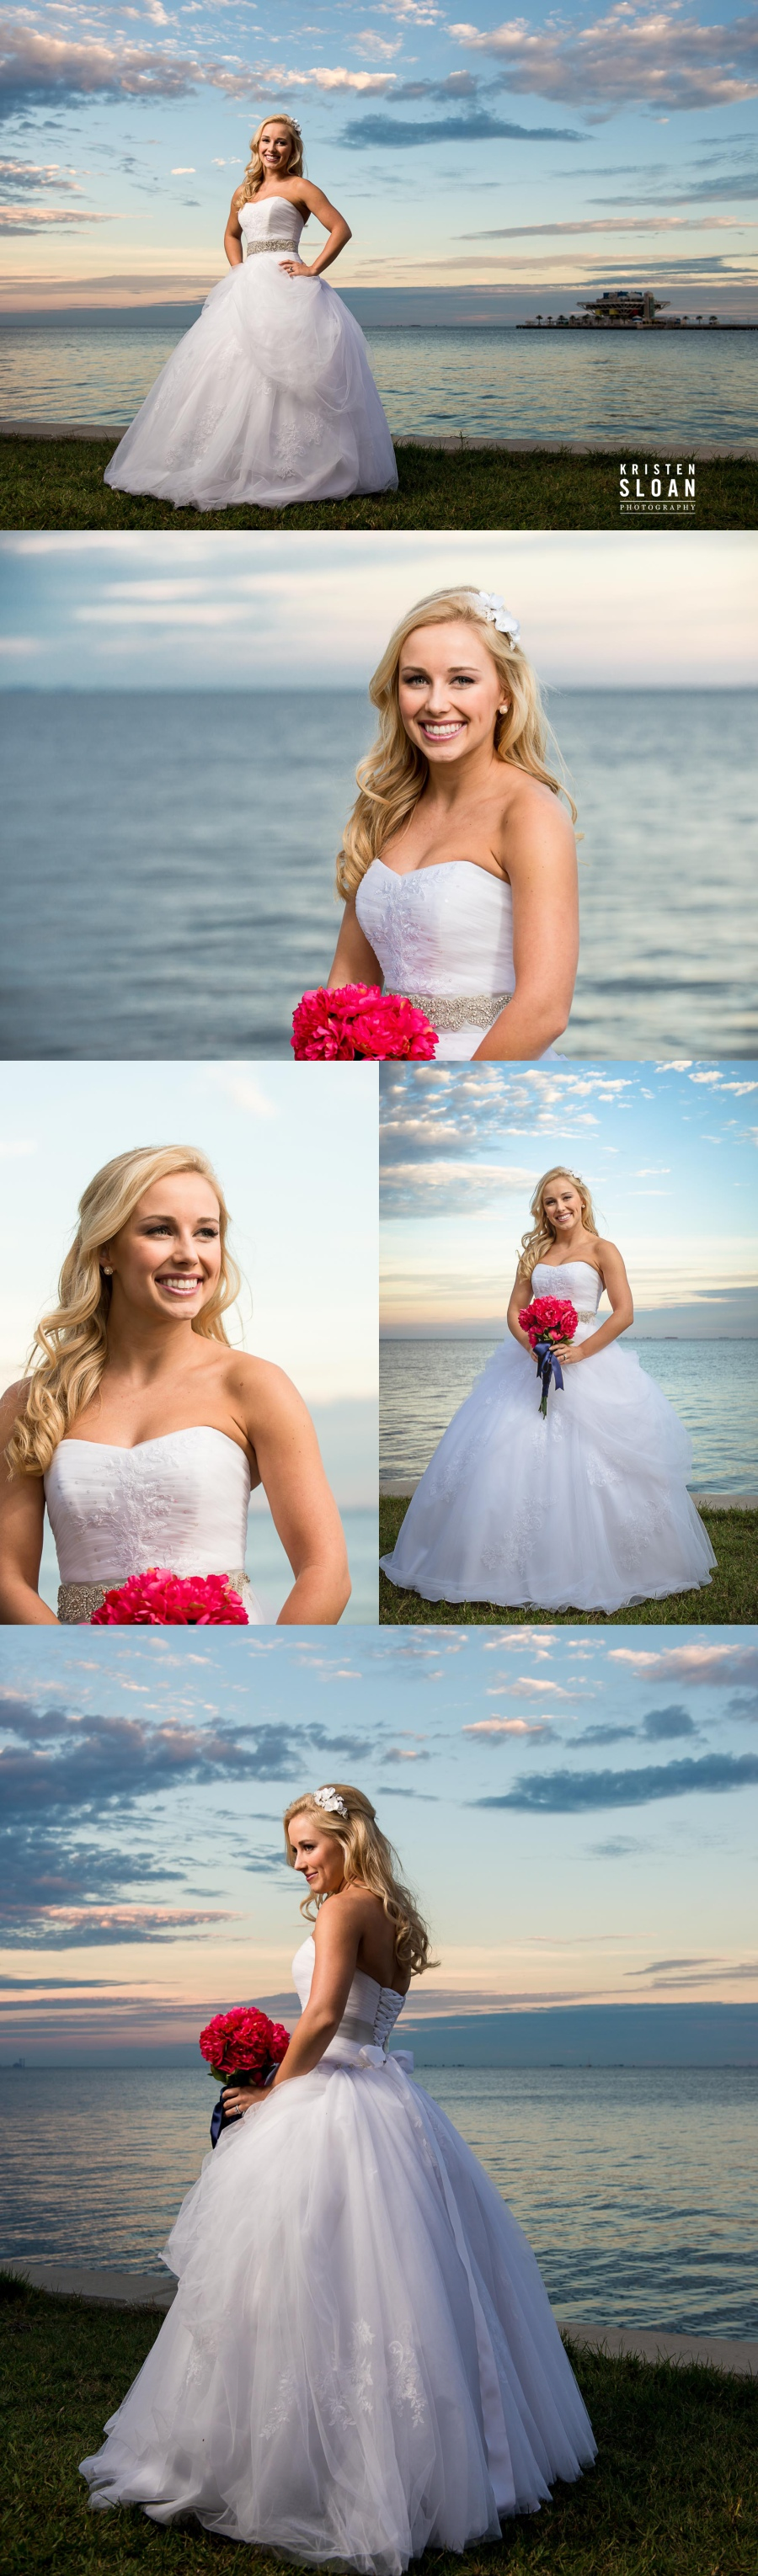 vinoy park bridal wedding photos portraits